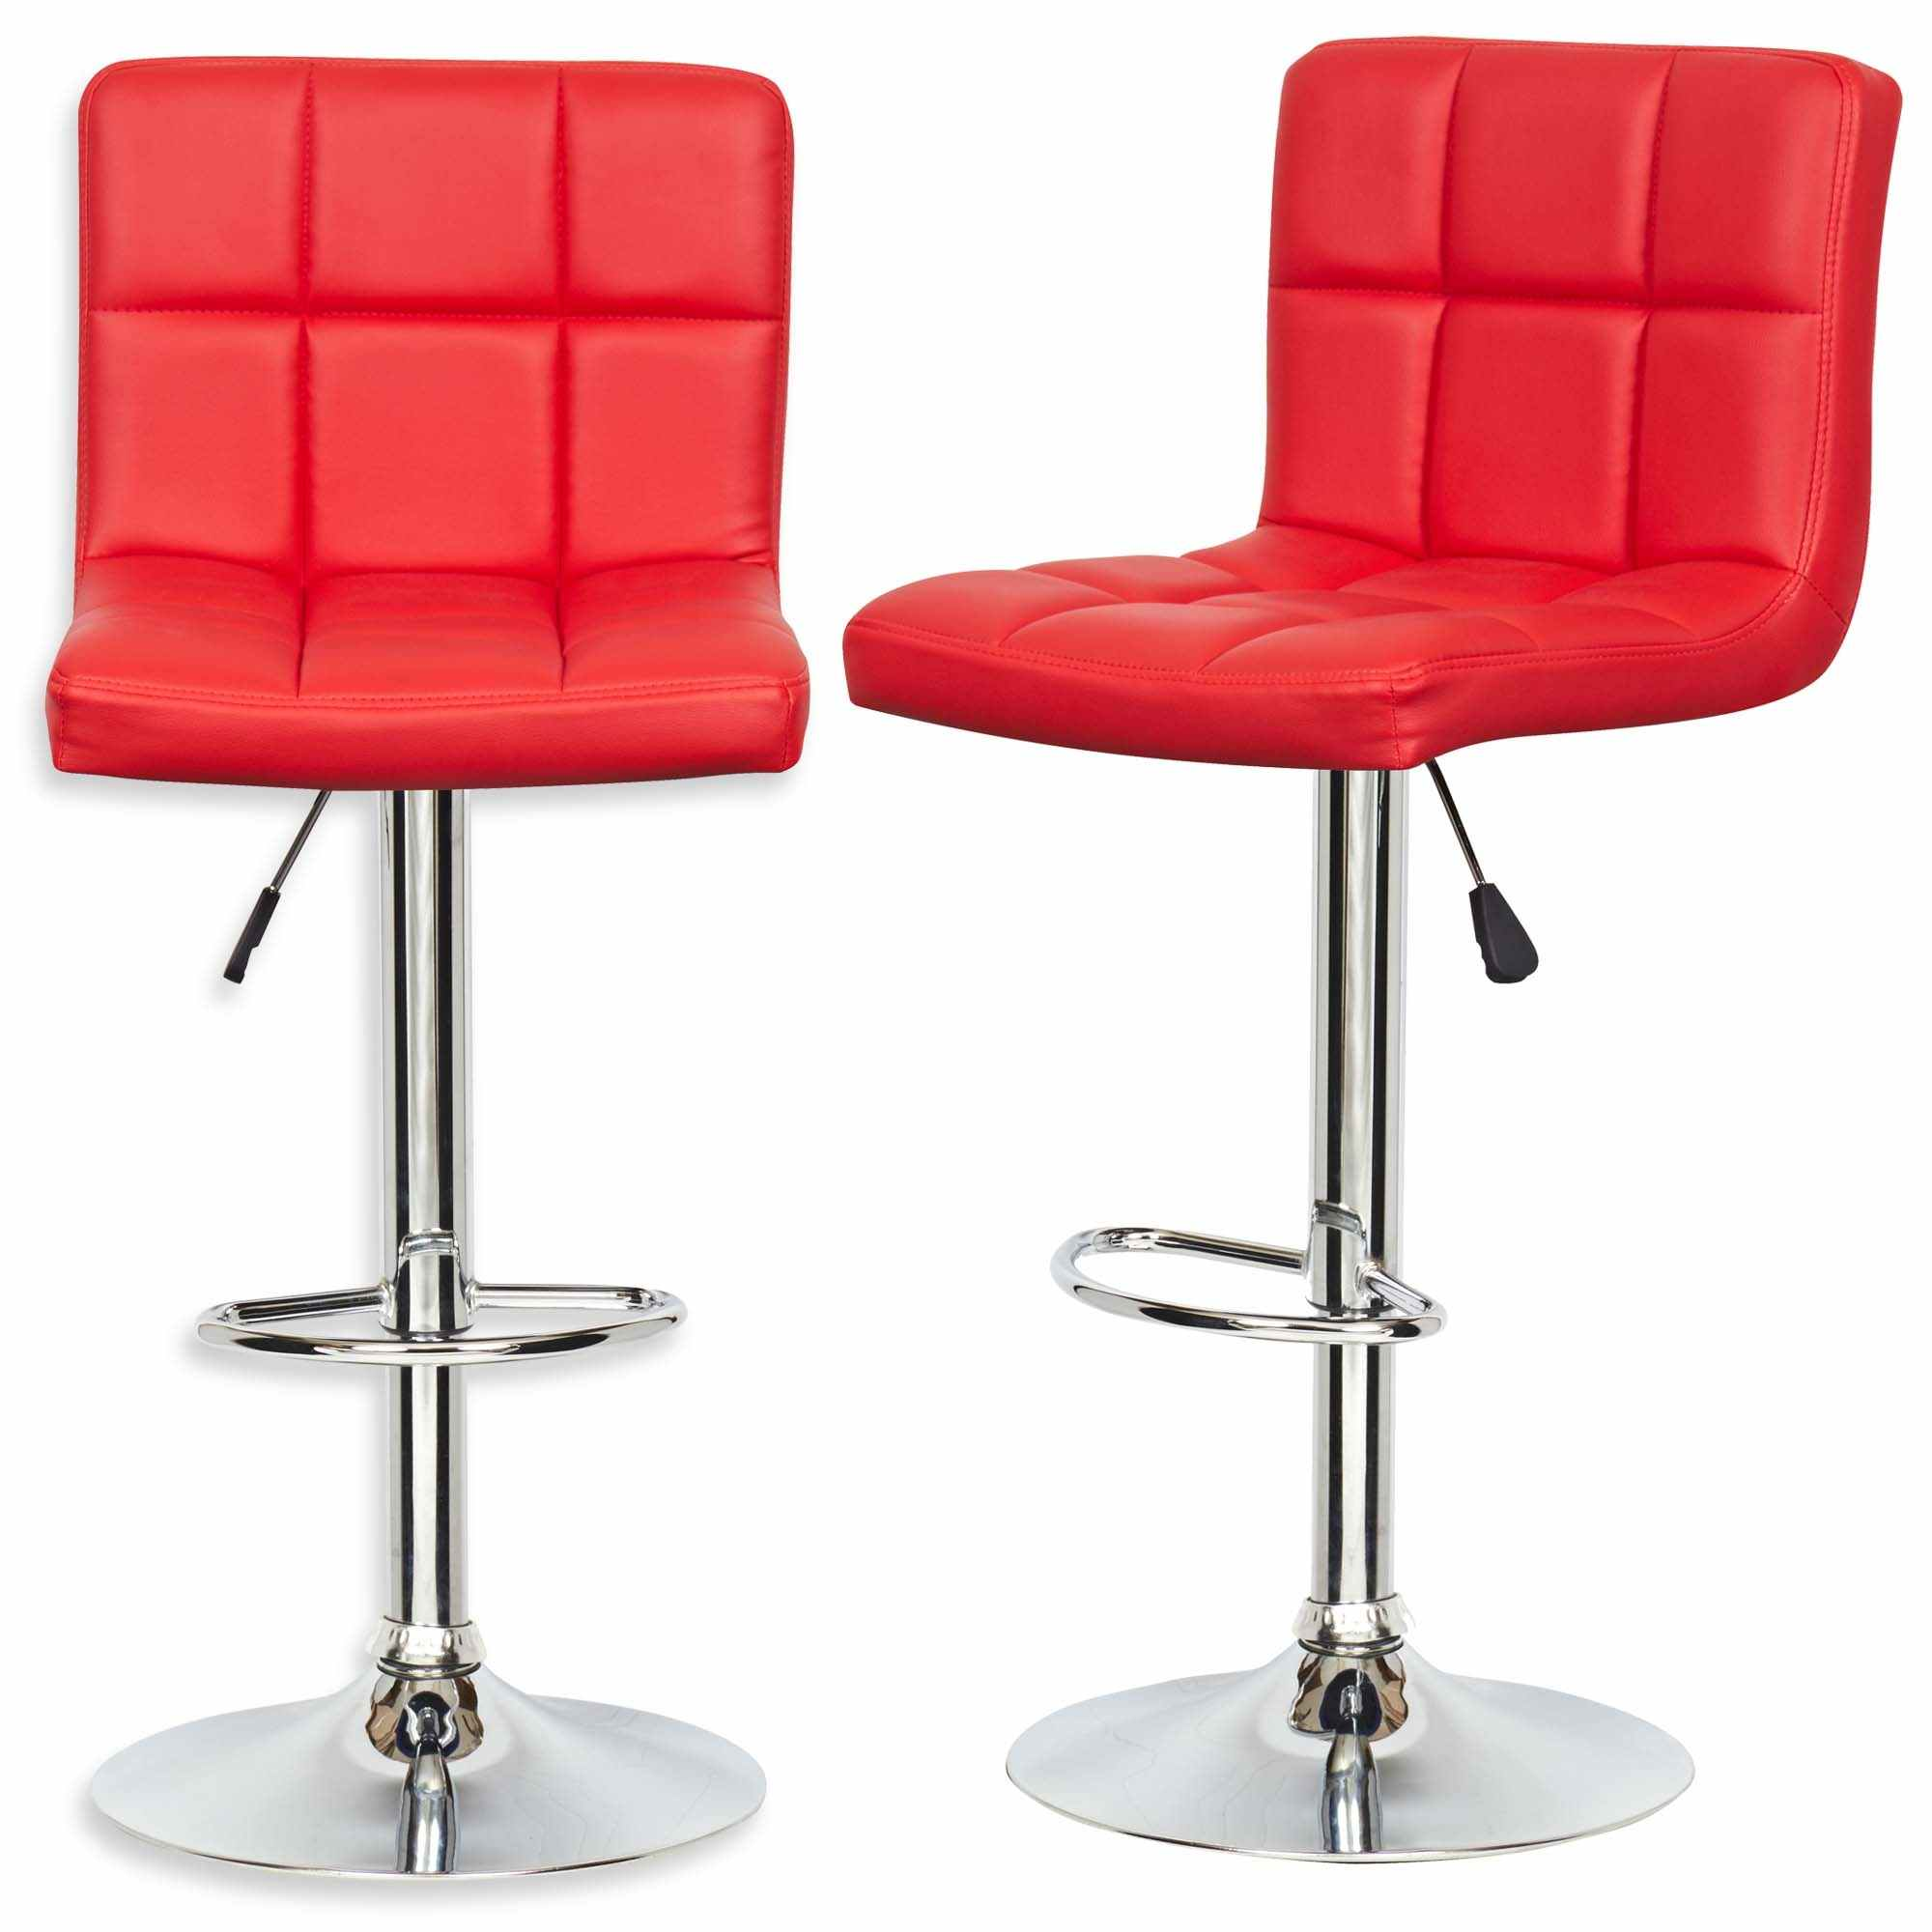 deco in paris lot de 2 tabourets de bar rouge scalo scalo rouge x2 tab. Black Bedroom Furniture Sets. Home Design Ideas